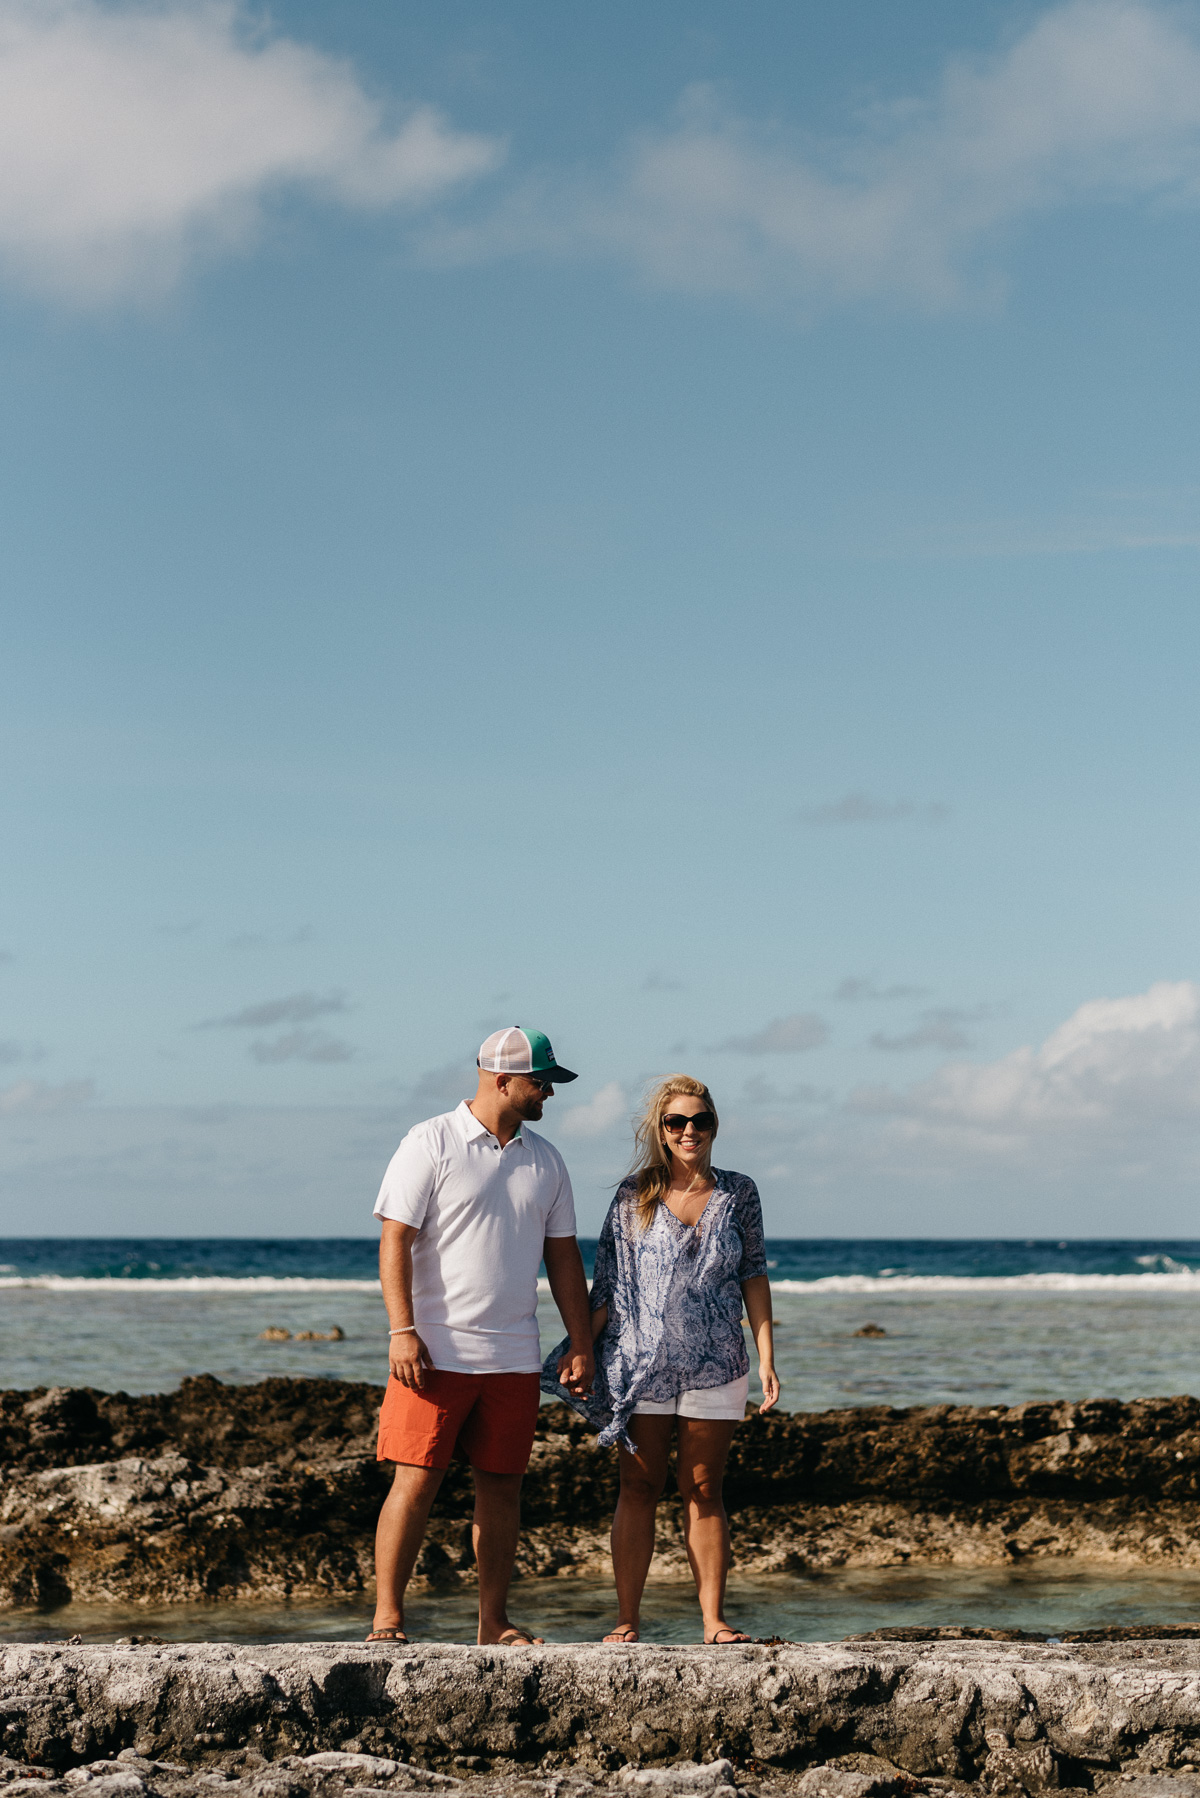 Destination Honeymoon photography at the south pacific